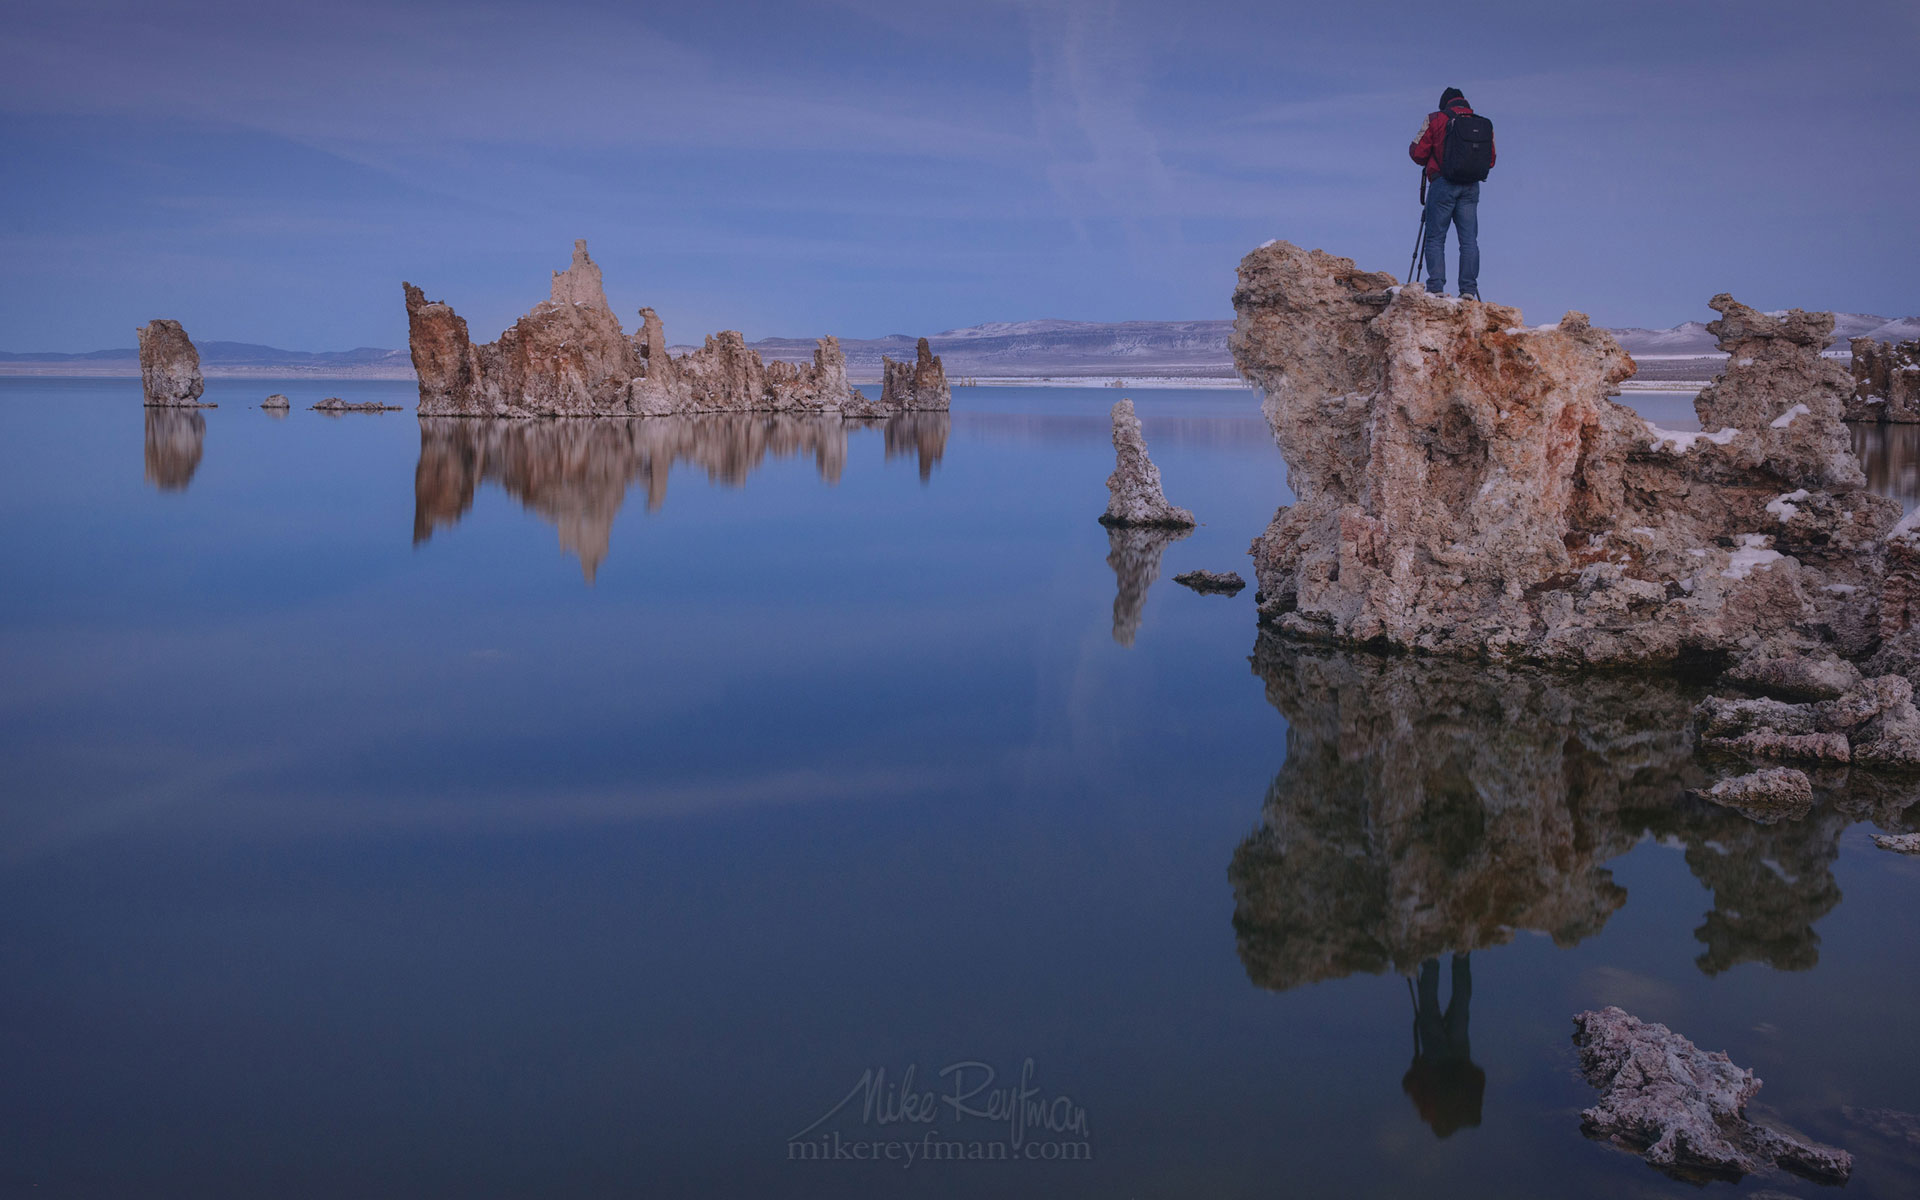 Mono Lake, Tufa State Natural Reserve, Eastern Sierra, California, USA ML1-MRN3X0685 - Mono Lake Tufa State Natural Reserve, Eastern Sierra, California - Mike Reyfman Photography